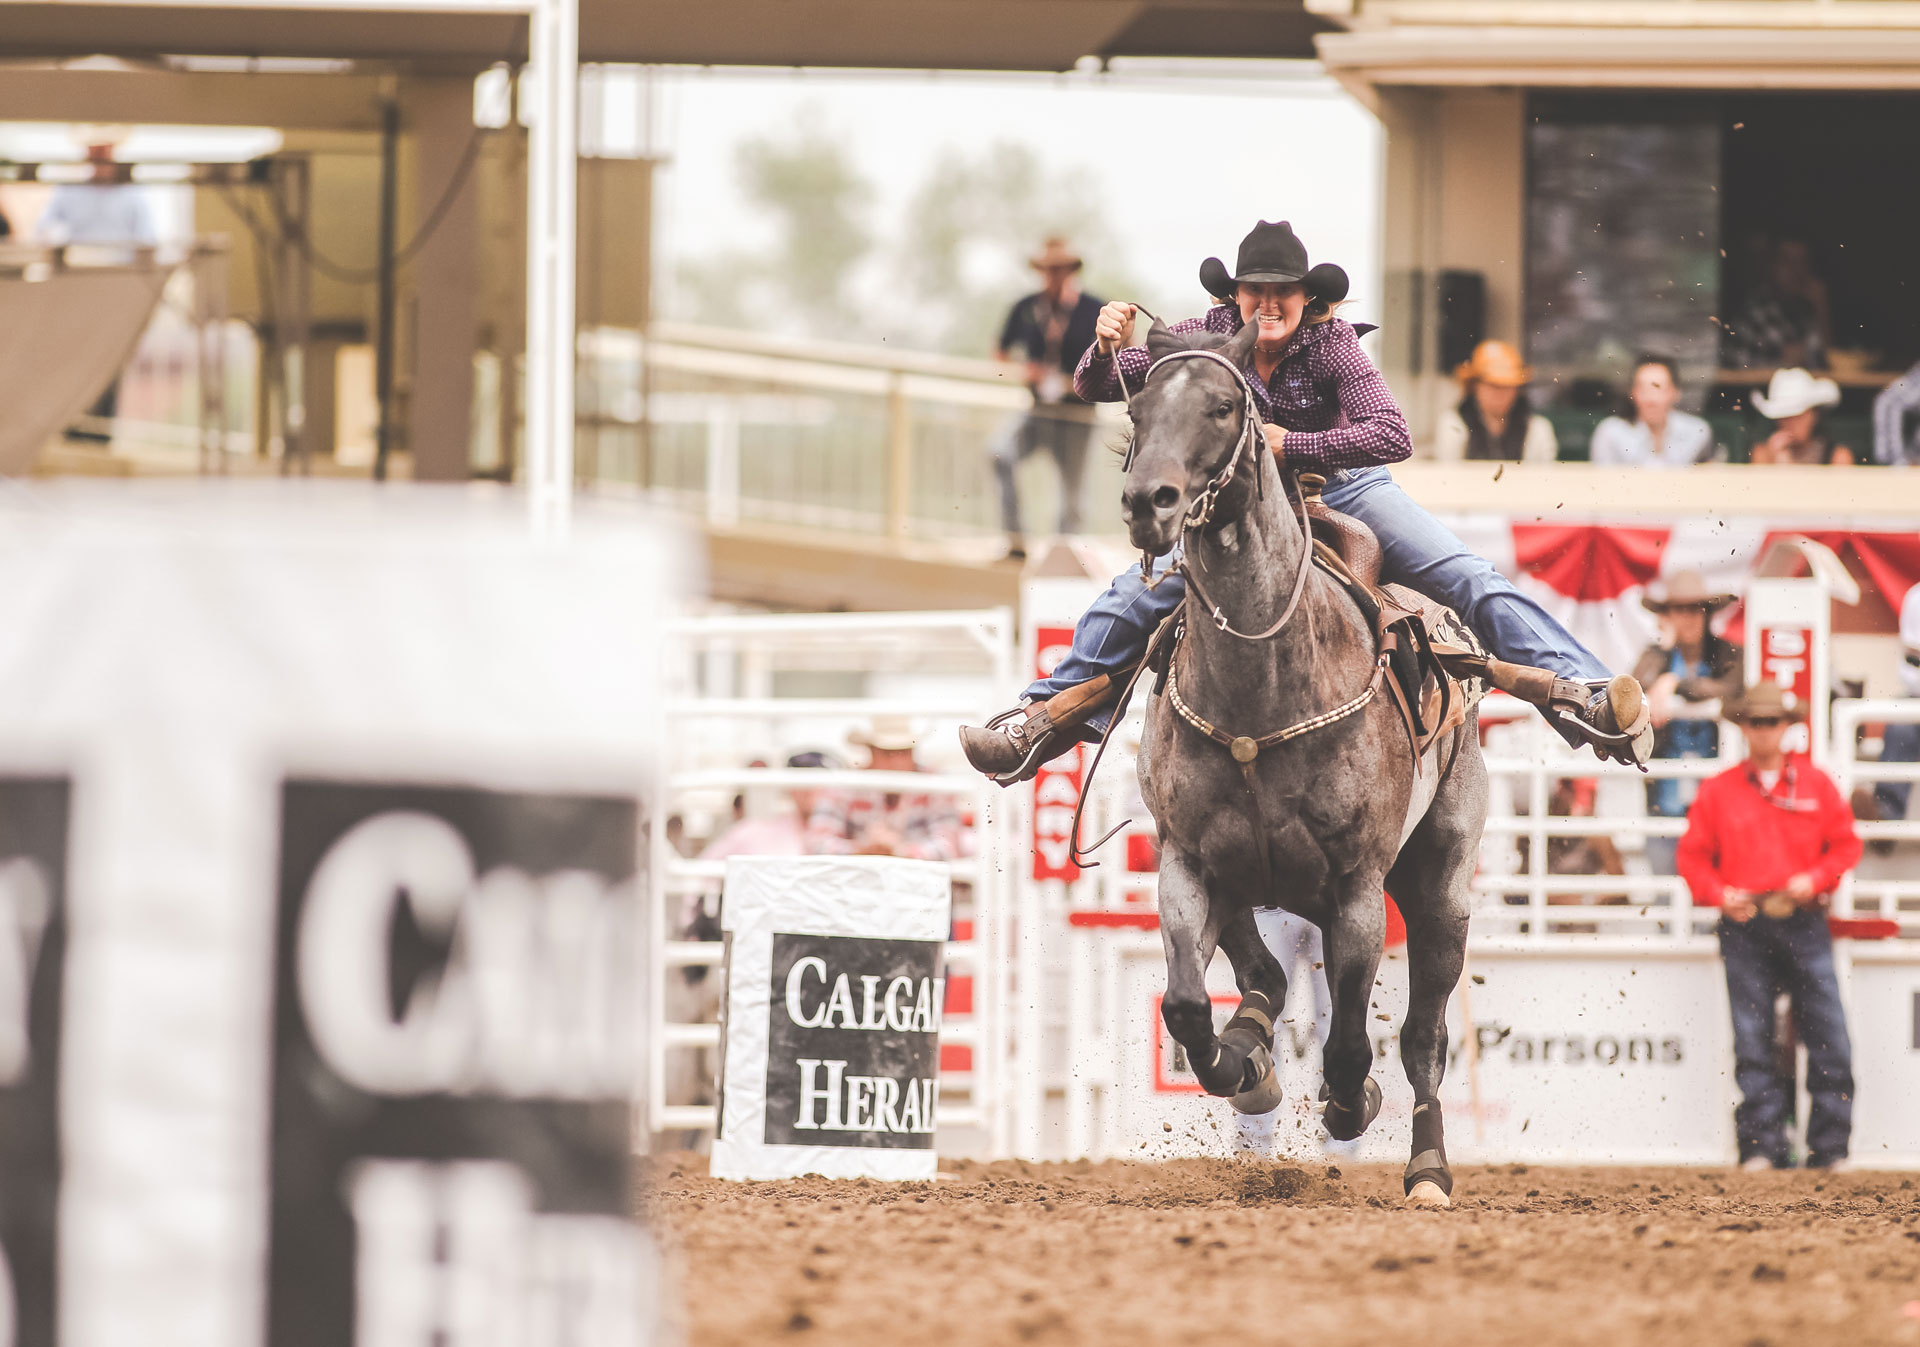 Cheer on the barrel racers at the Calgary Stampede rodeo.